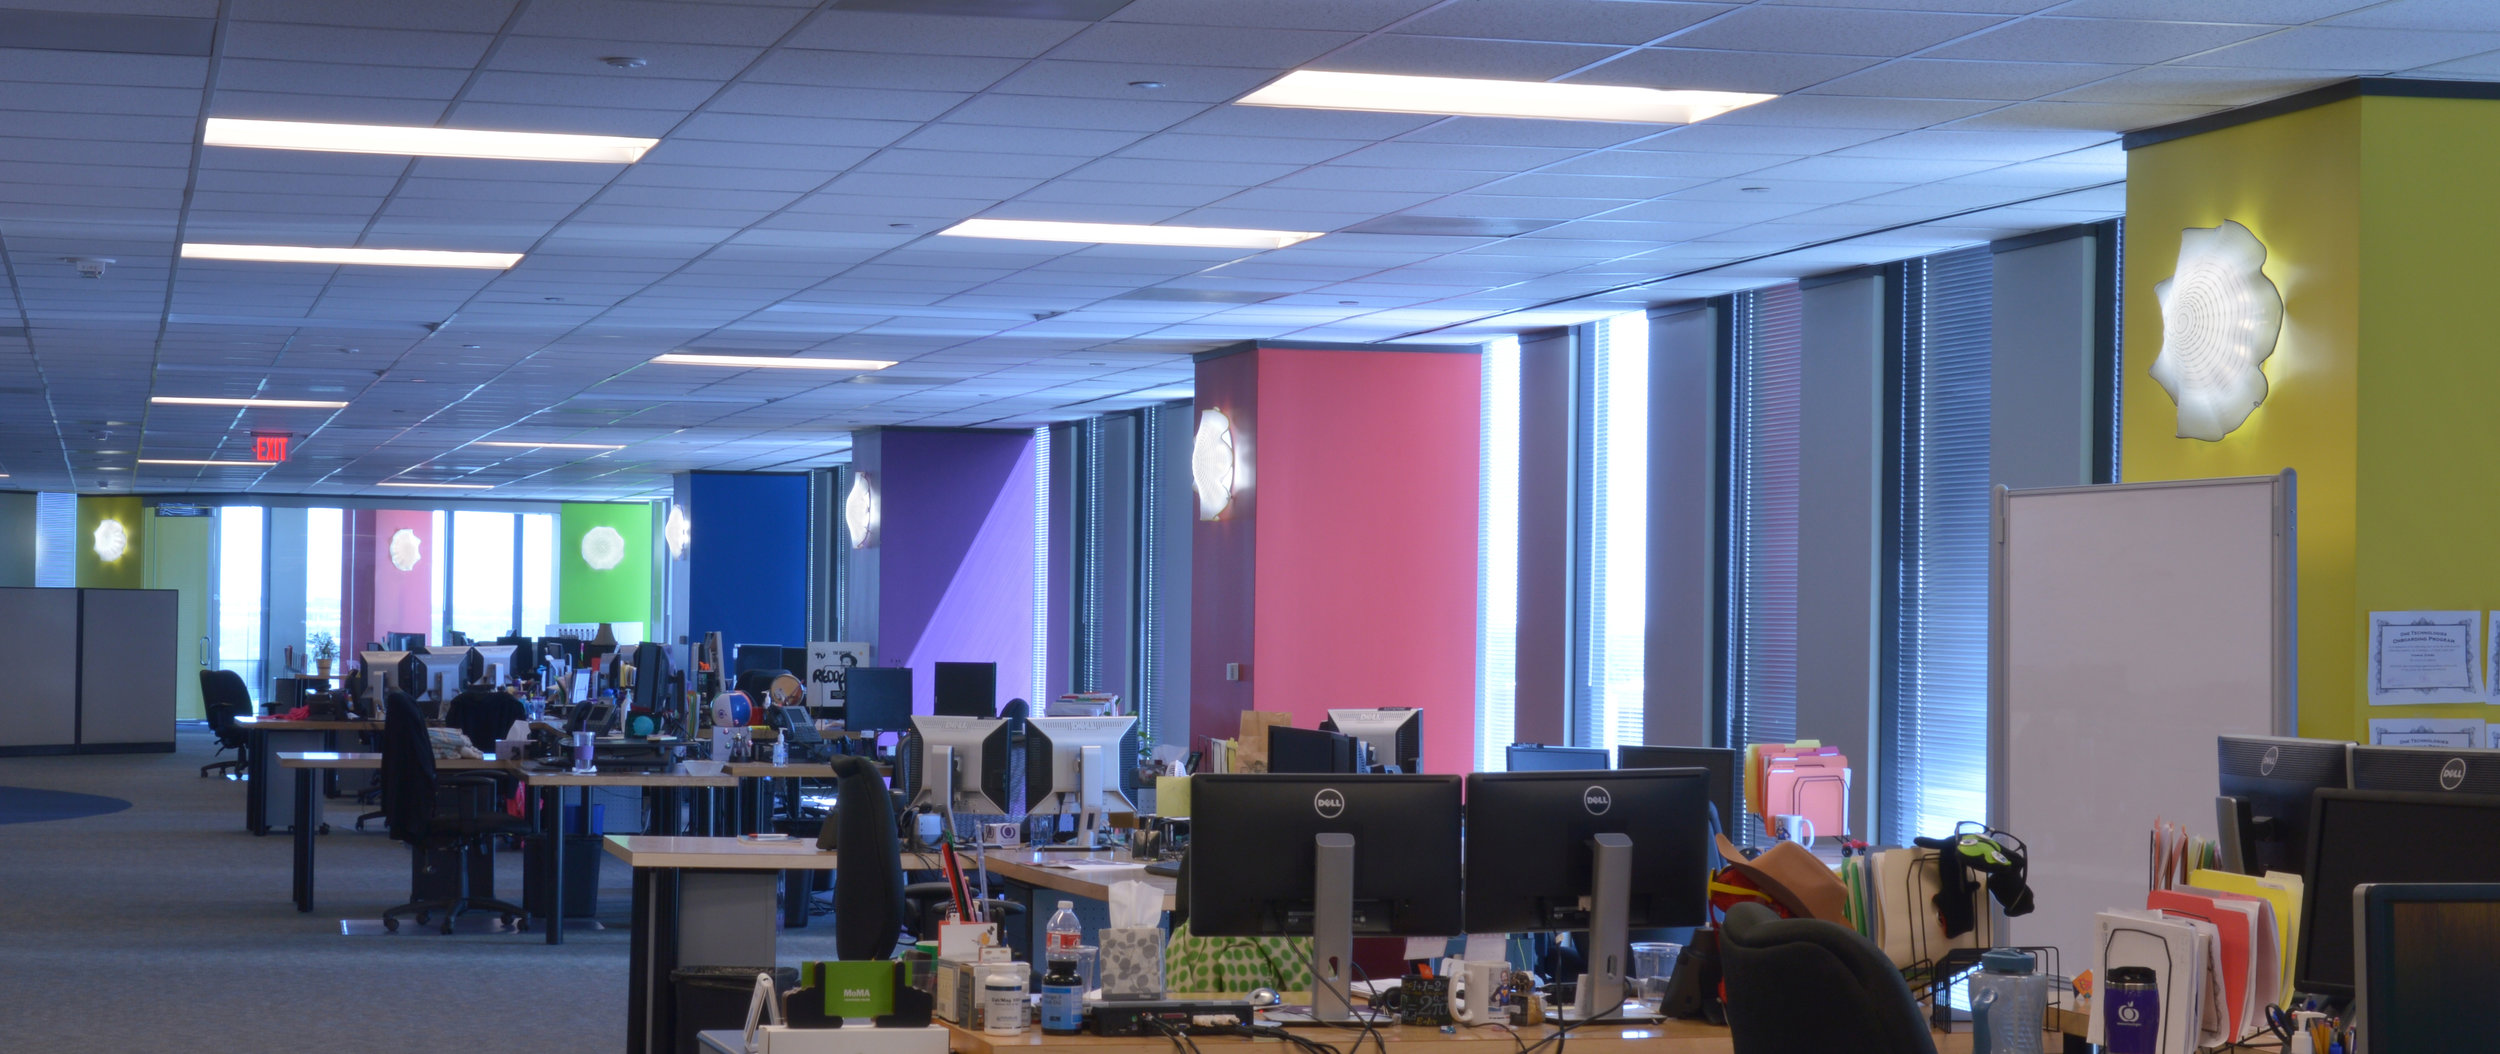 Art glass lighting used to create excitement in an open plan office space. See our  Lighting Options